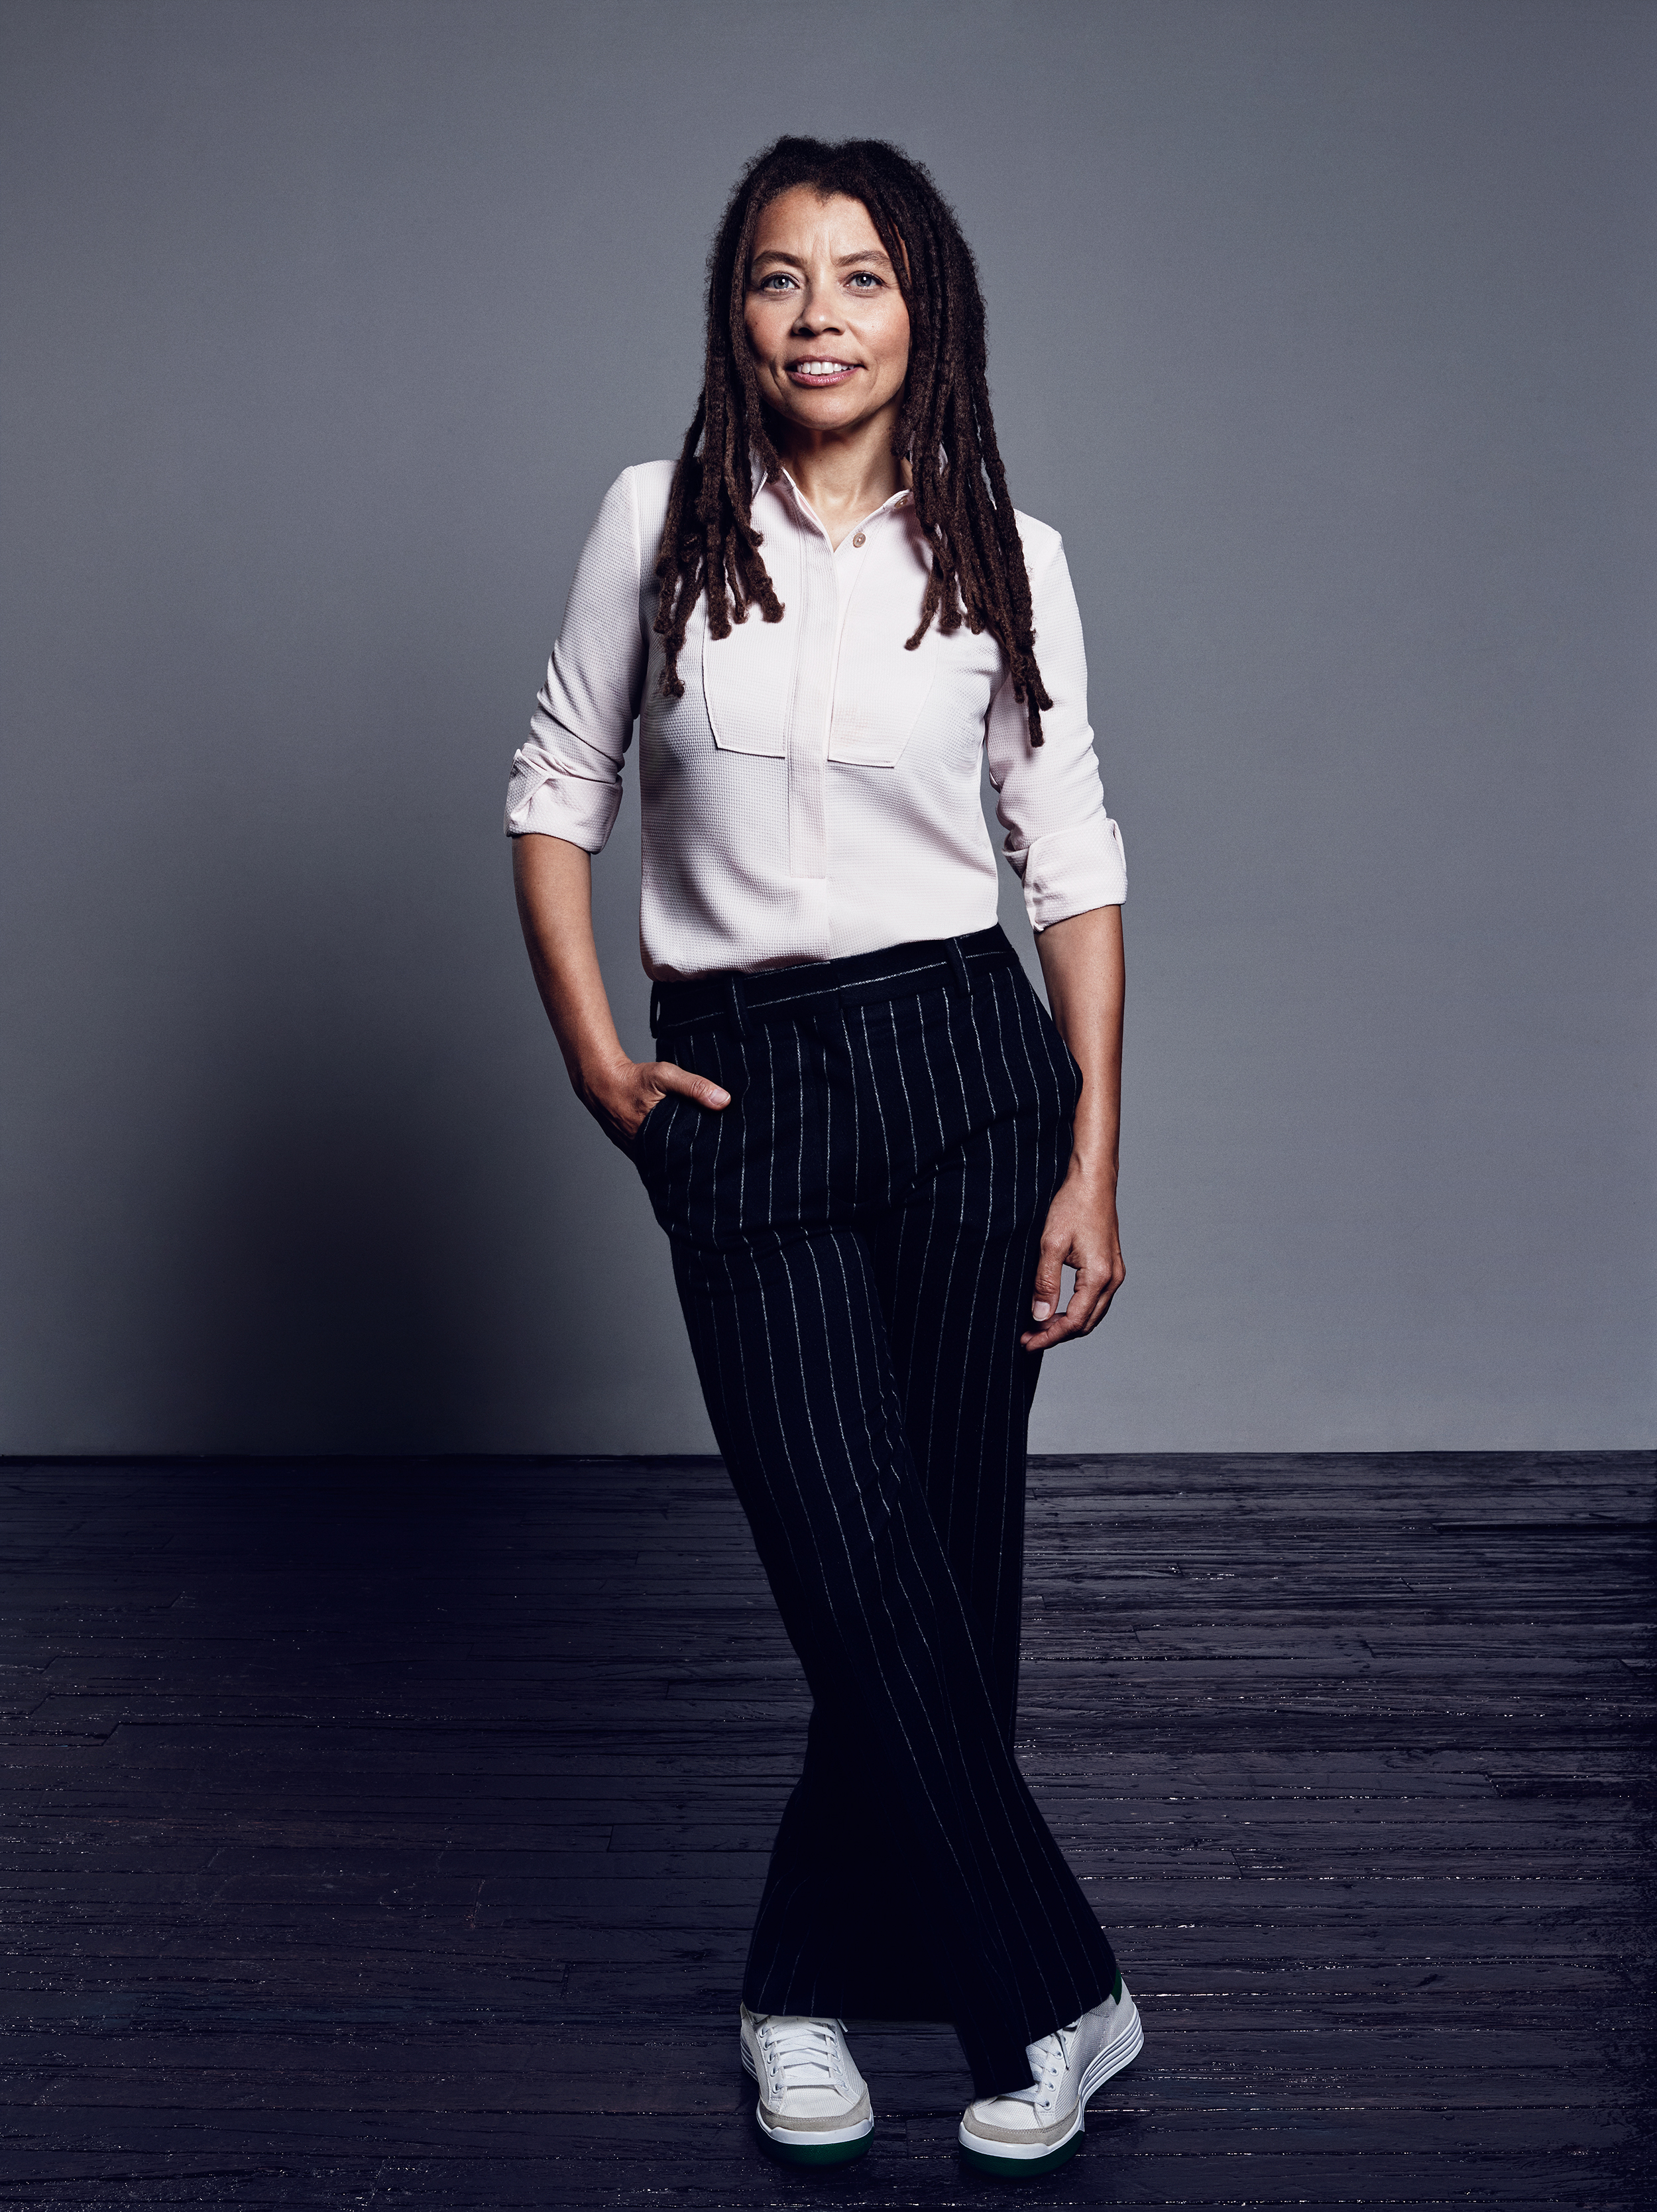 Kia Corthron, playwright and novelist, for Elle US.